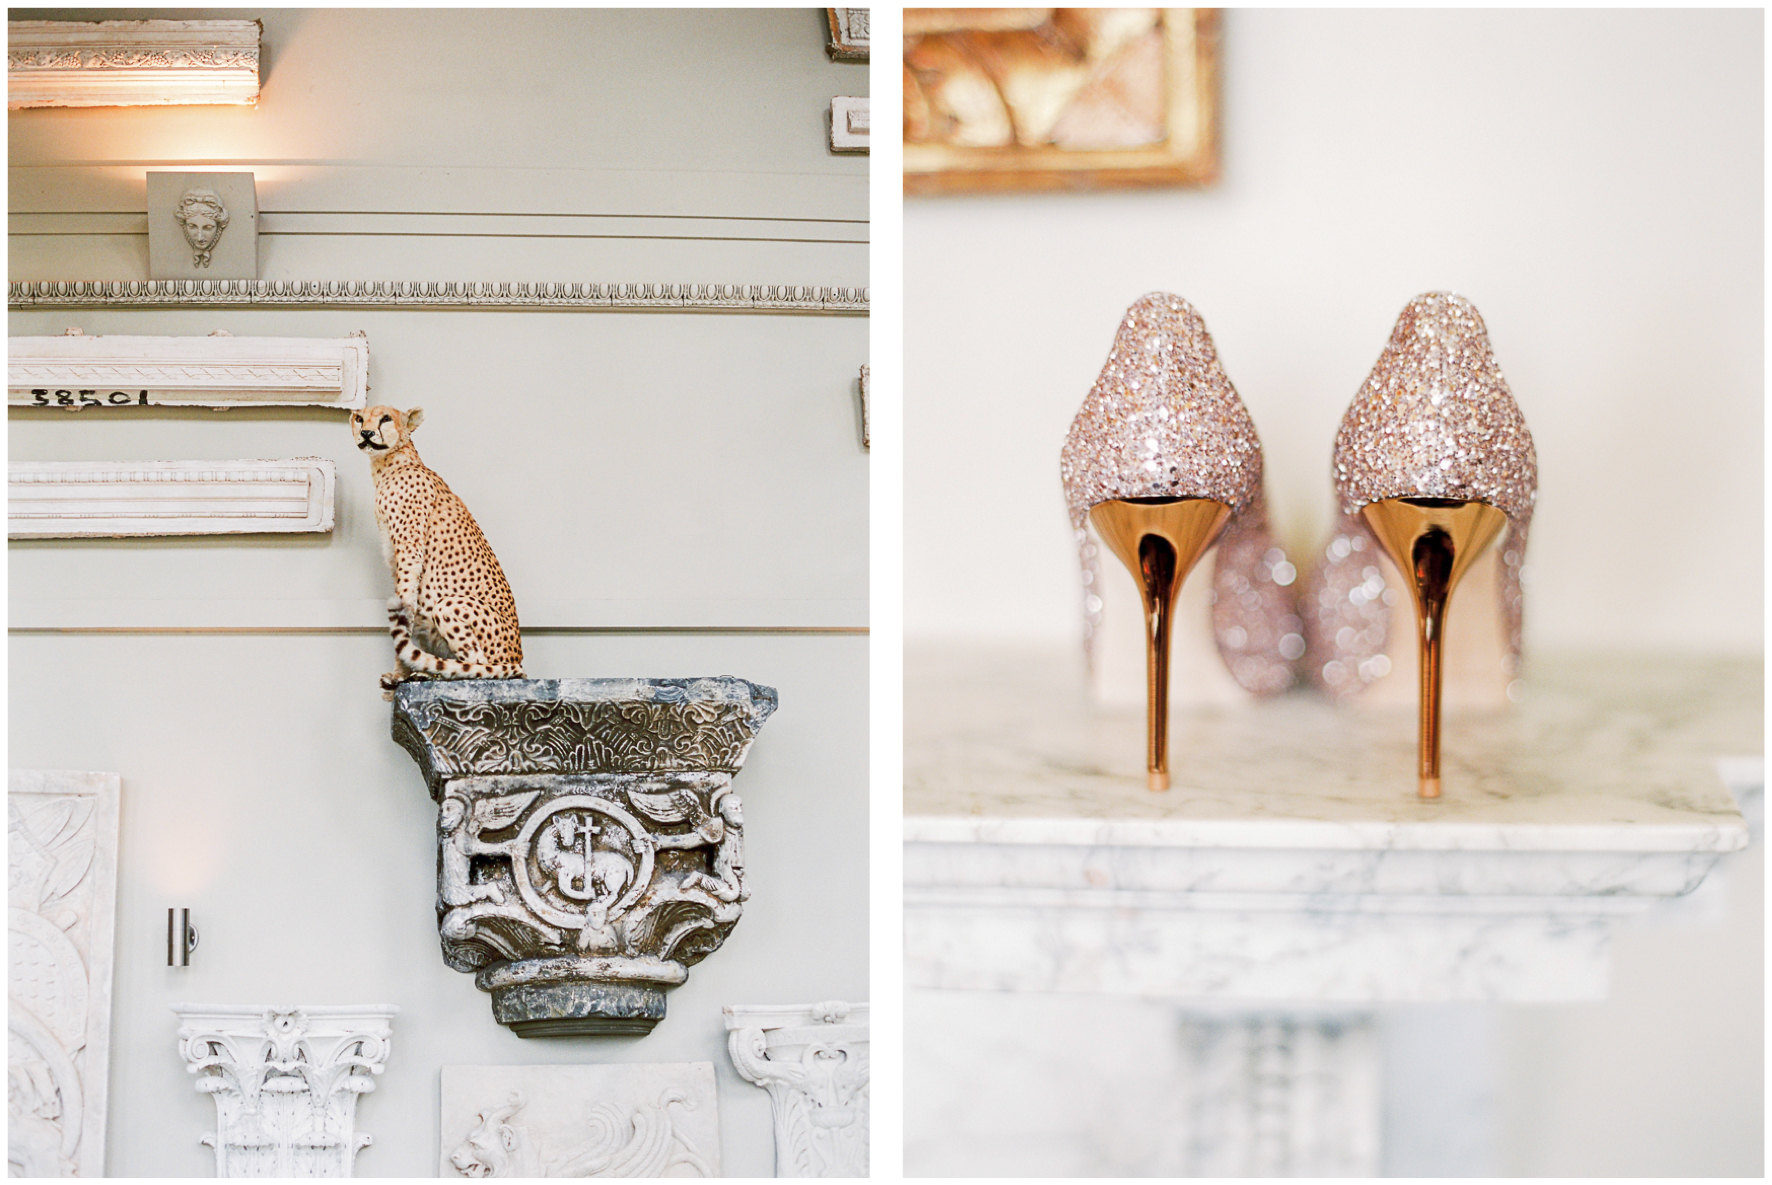 Aynhoe Park, wedding venue, Jimmy Choo glitter shoes